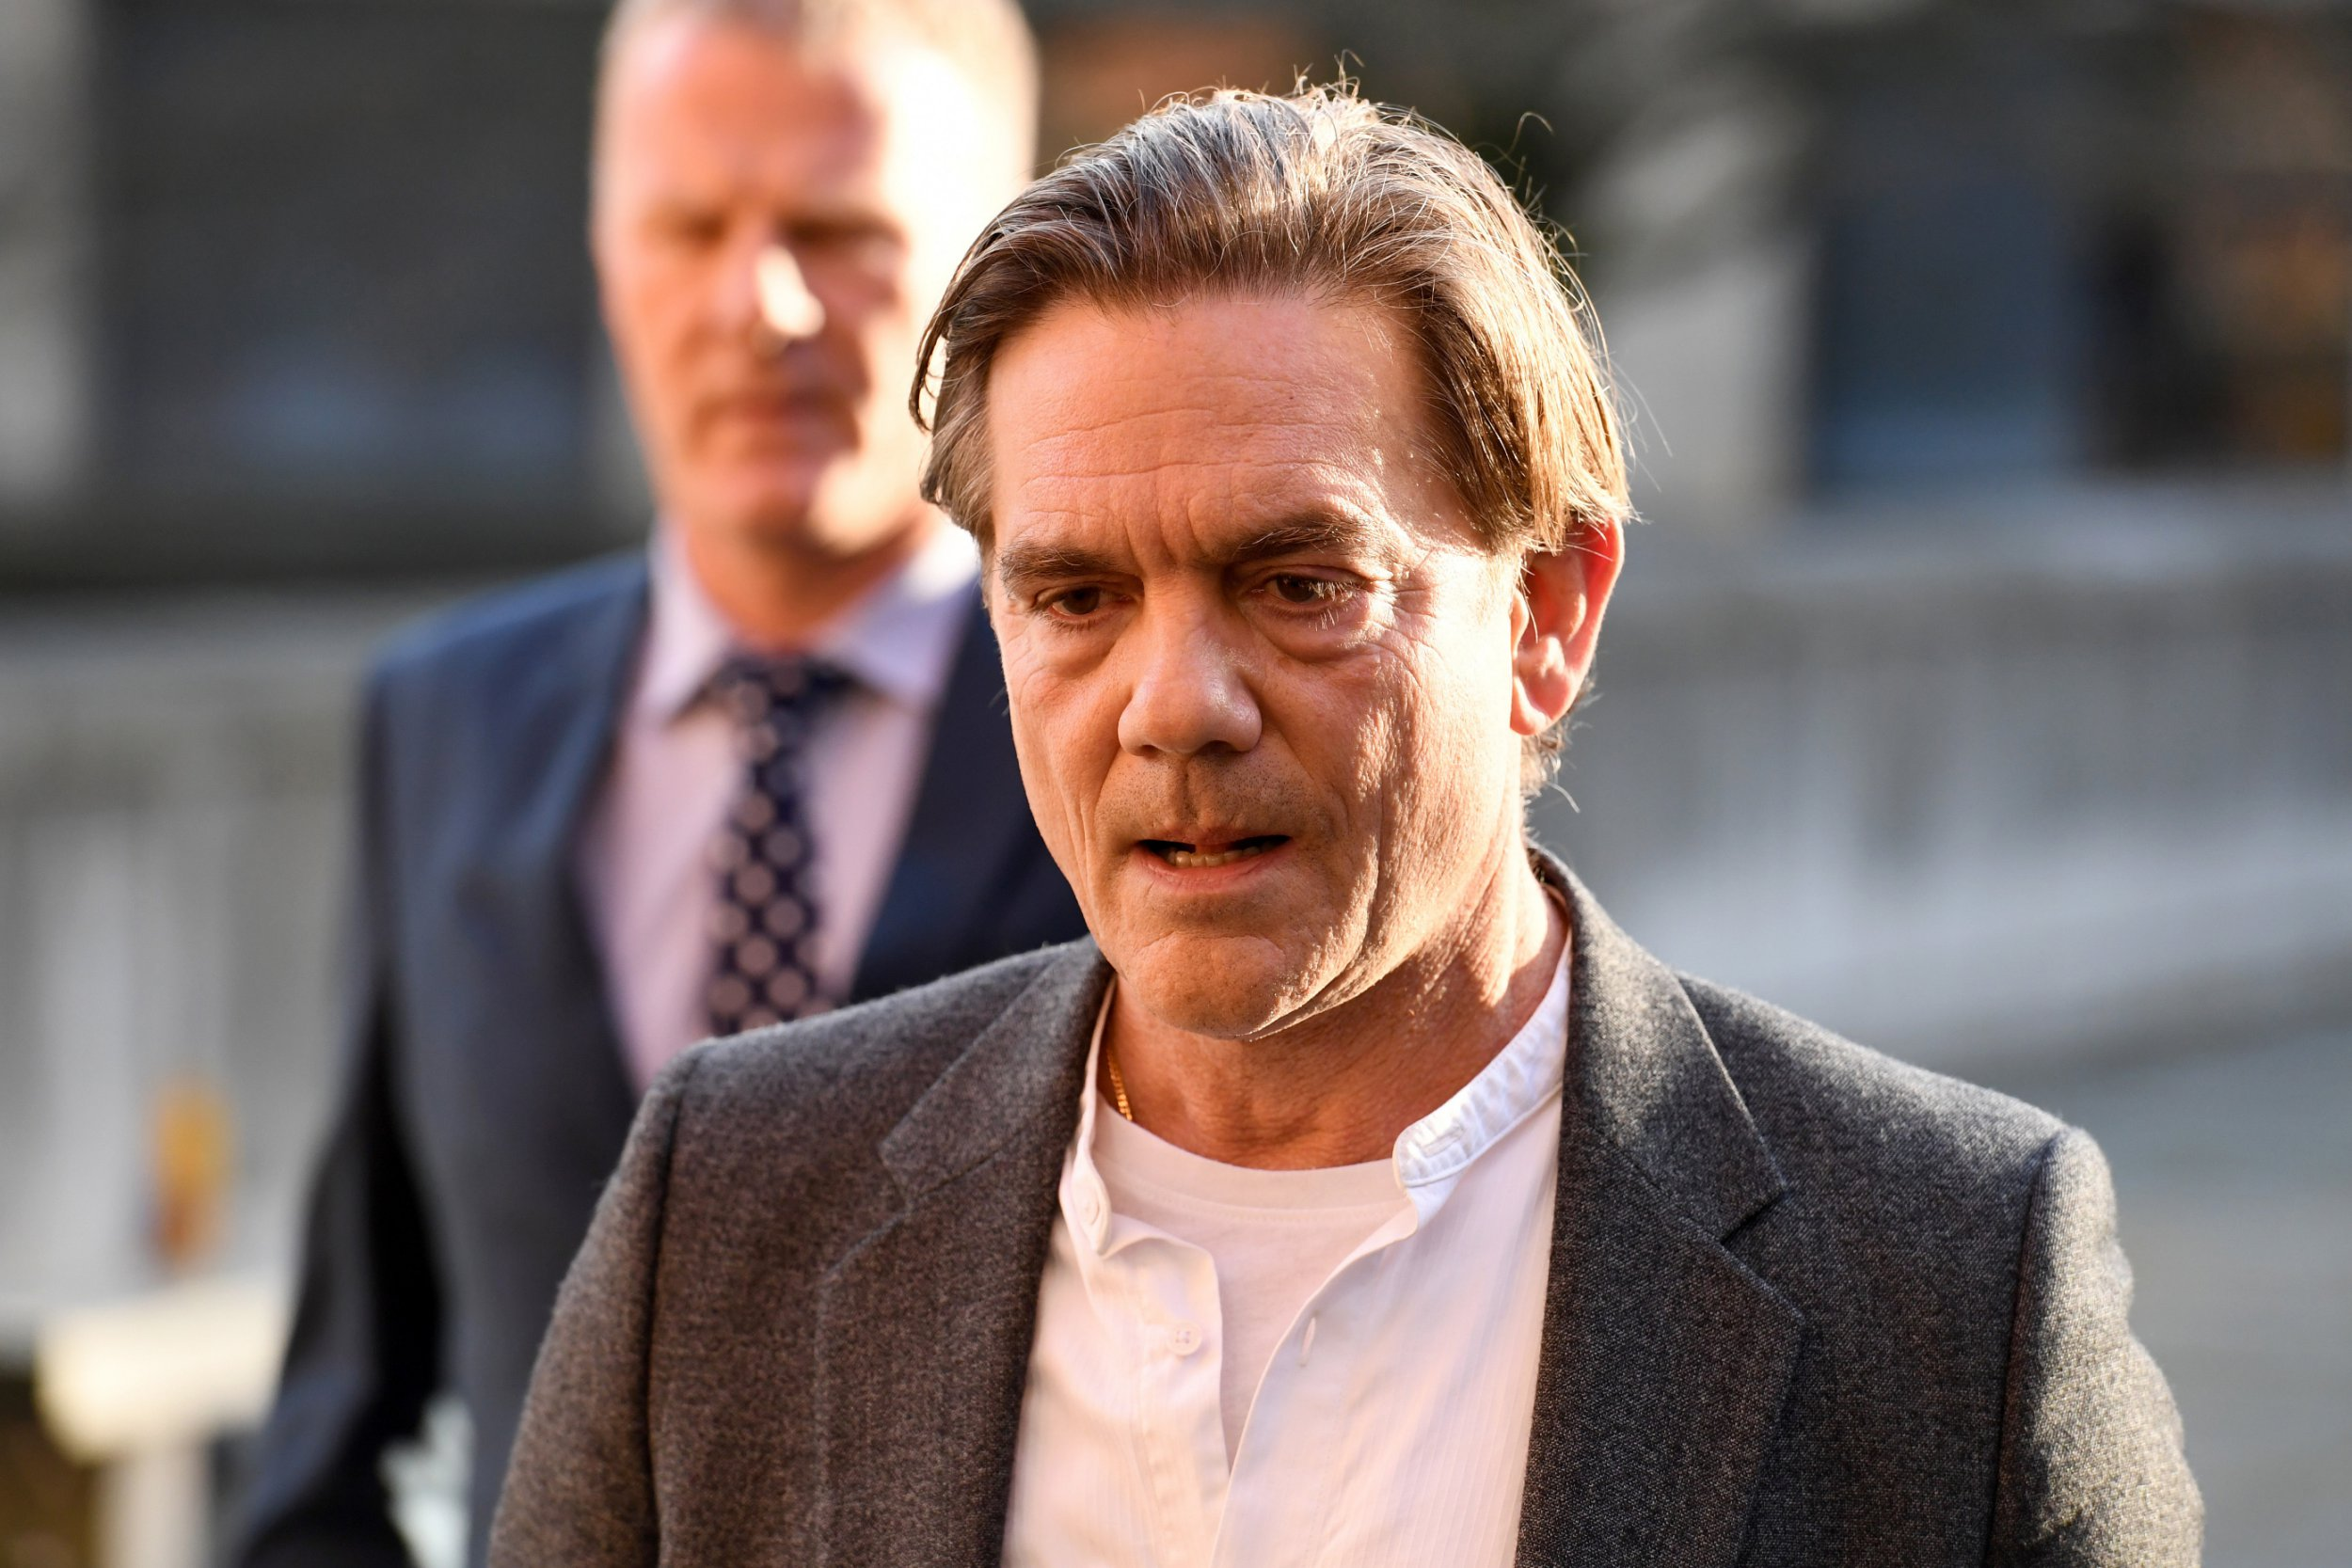 Holby City star John Michie 'tries not to think' about daughter Louella following tragic death as he returns to work